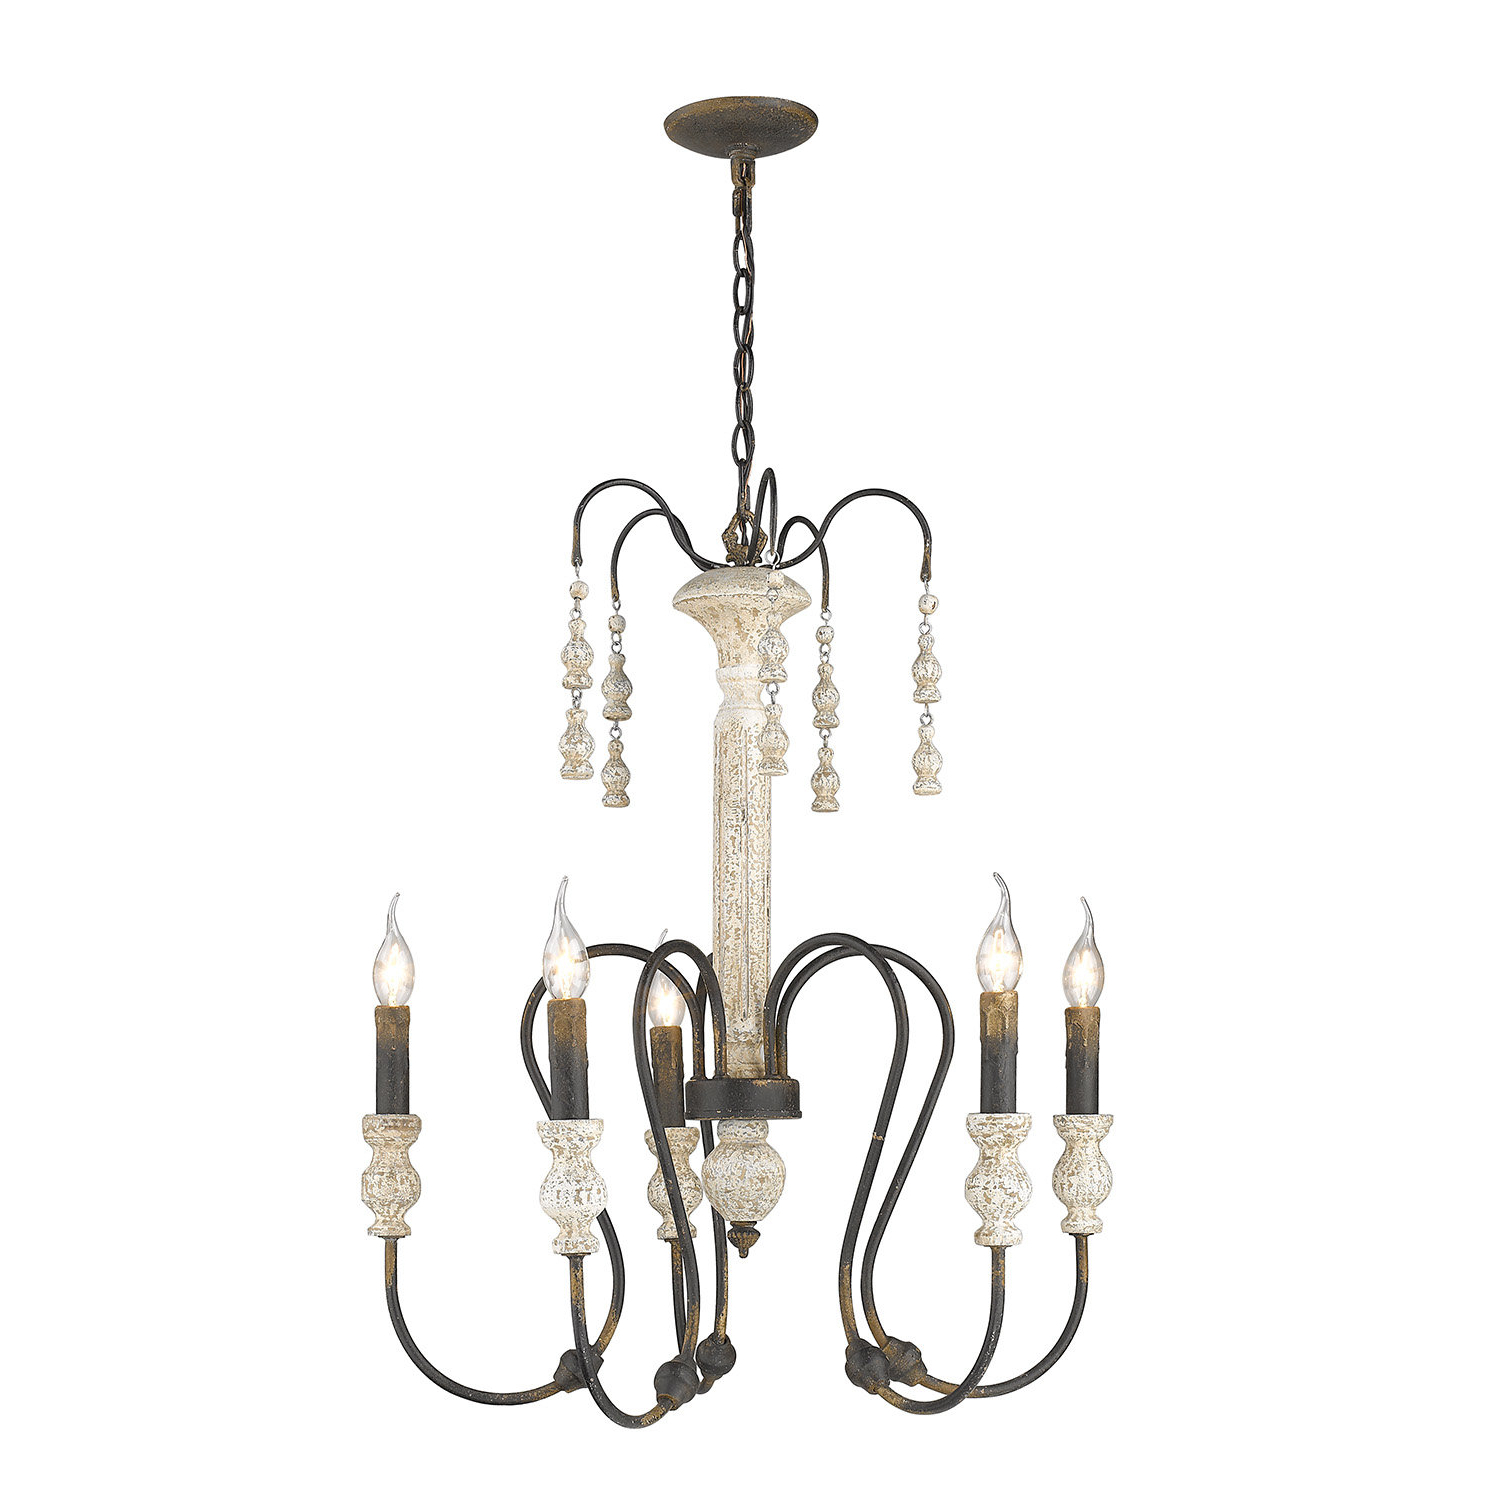 Newest Corneau 5 Light Chandeliers With Regard To Sherrie 5 Light Candle Style Chandelier (View 16 of 25)